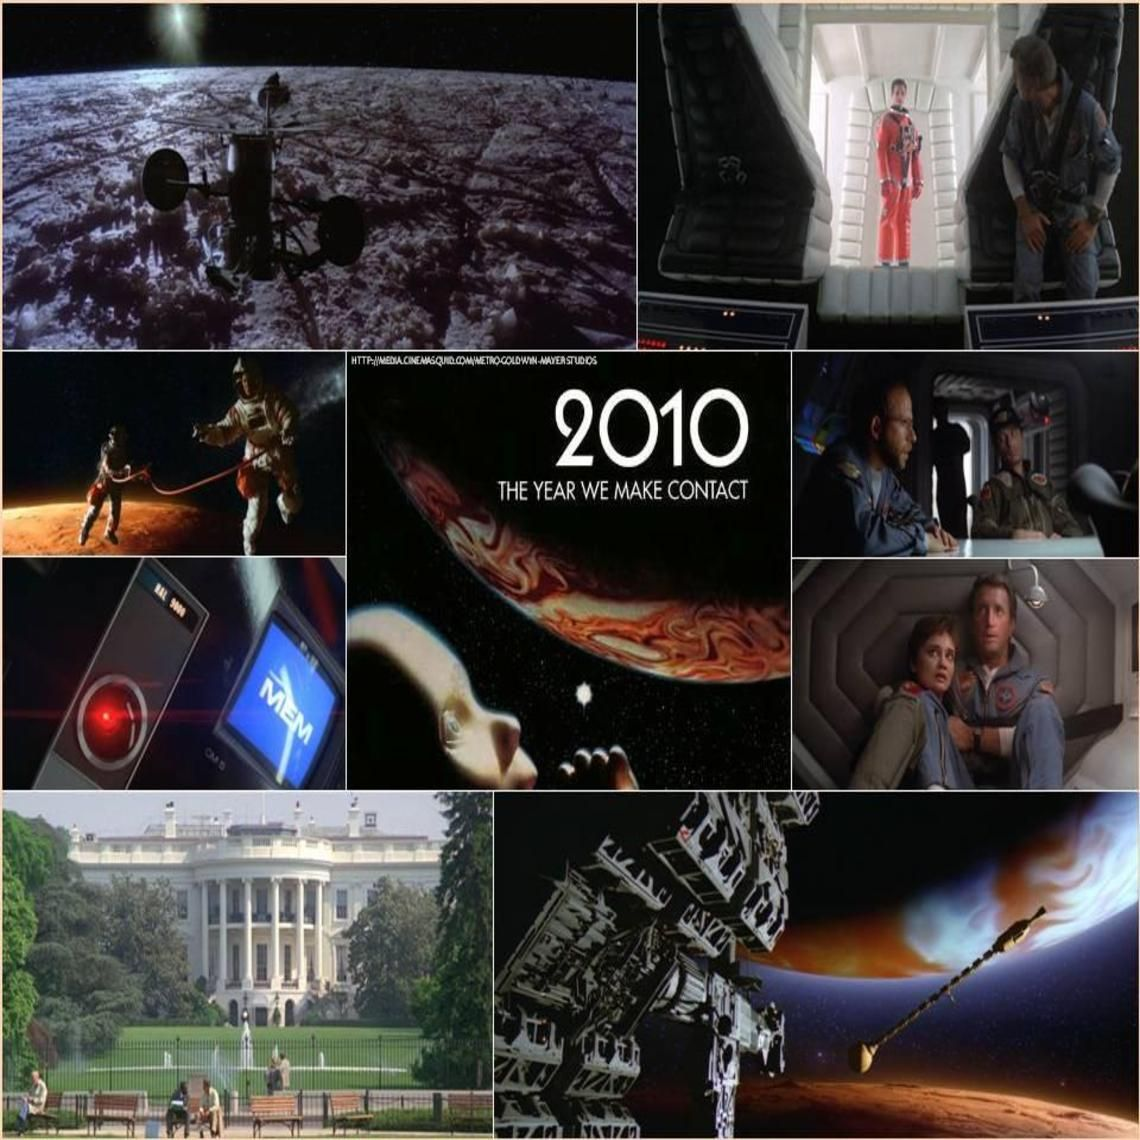 2010 The Year We Make Contact 1980s Movie Posters Science